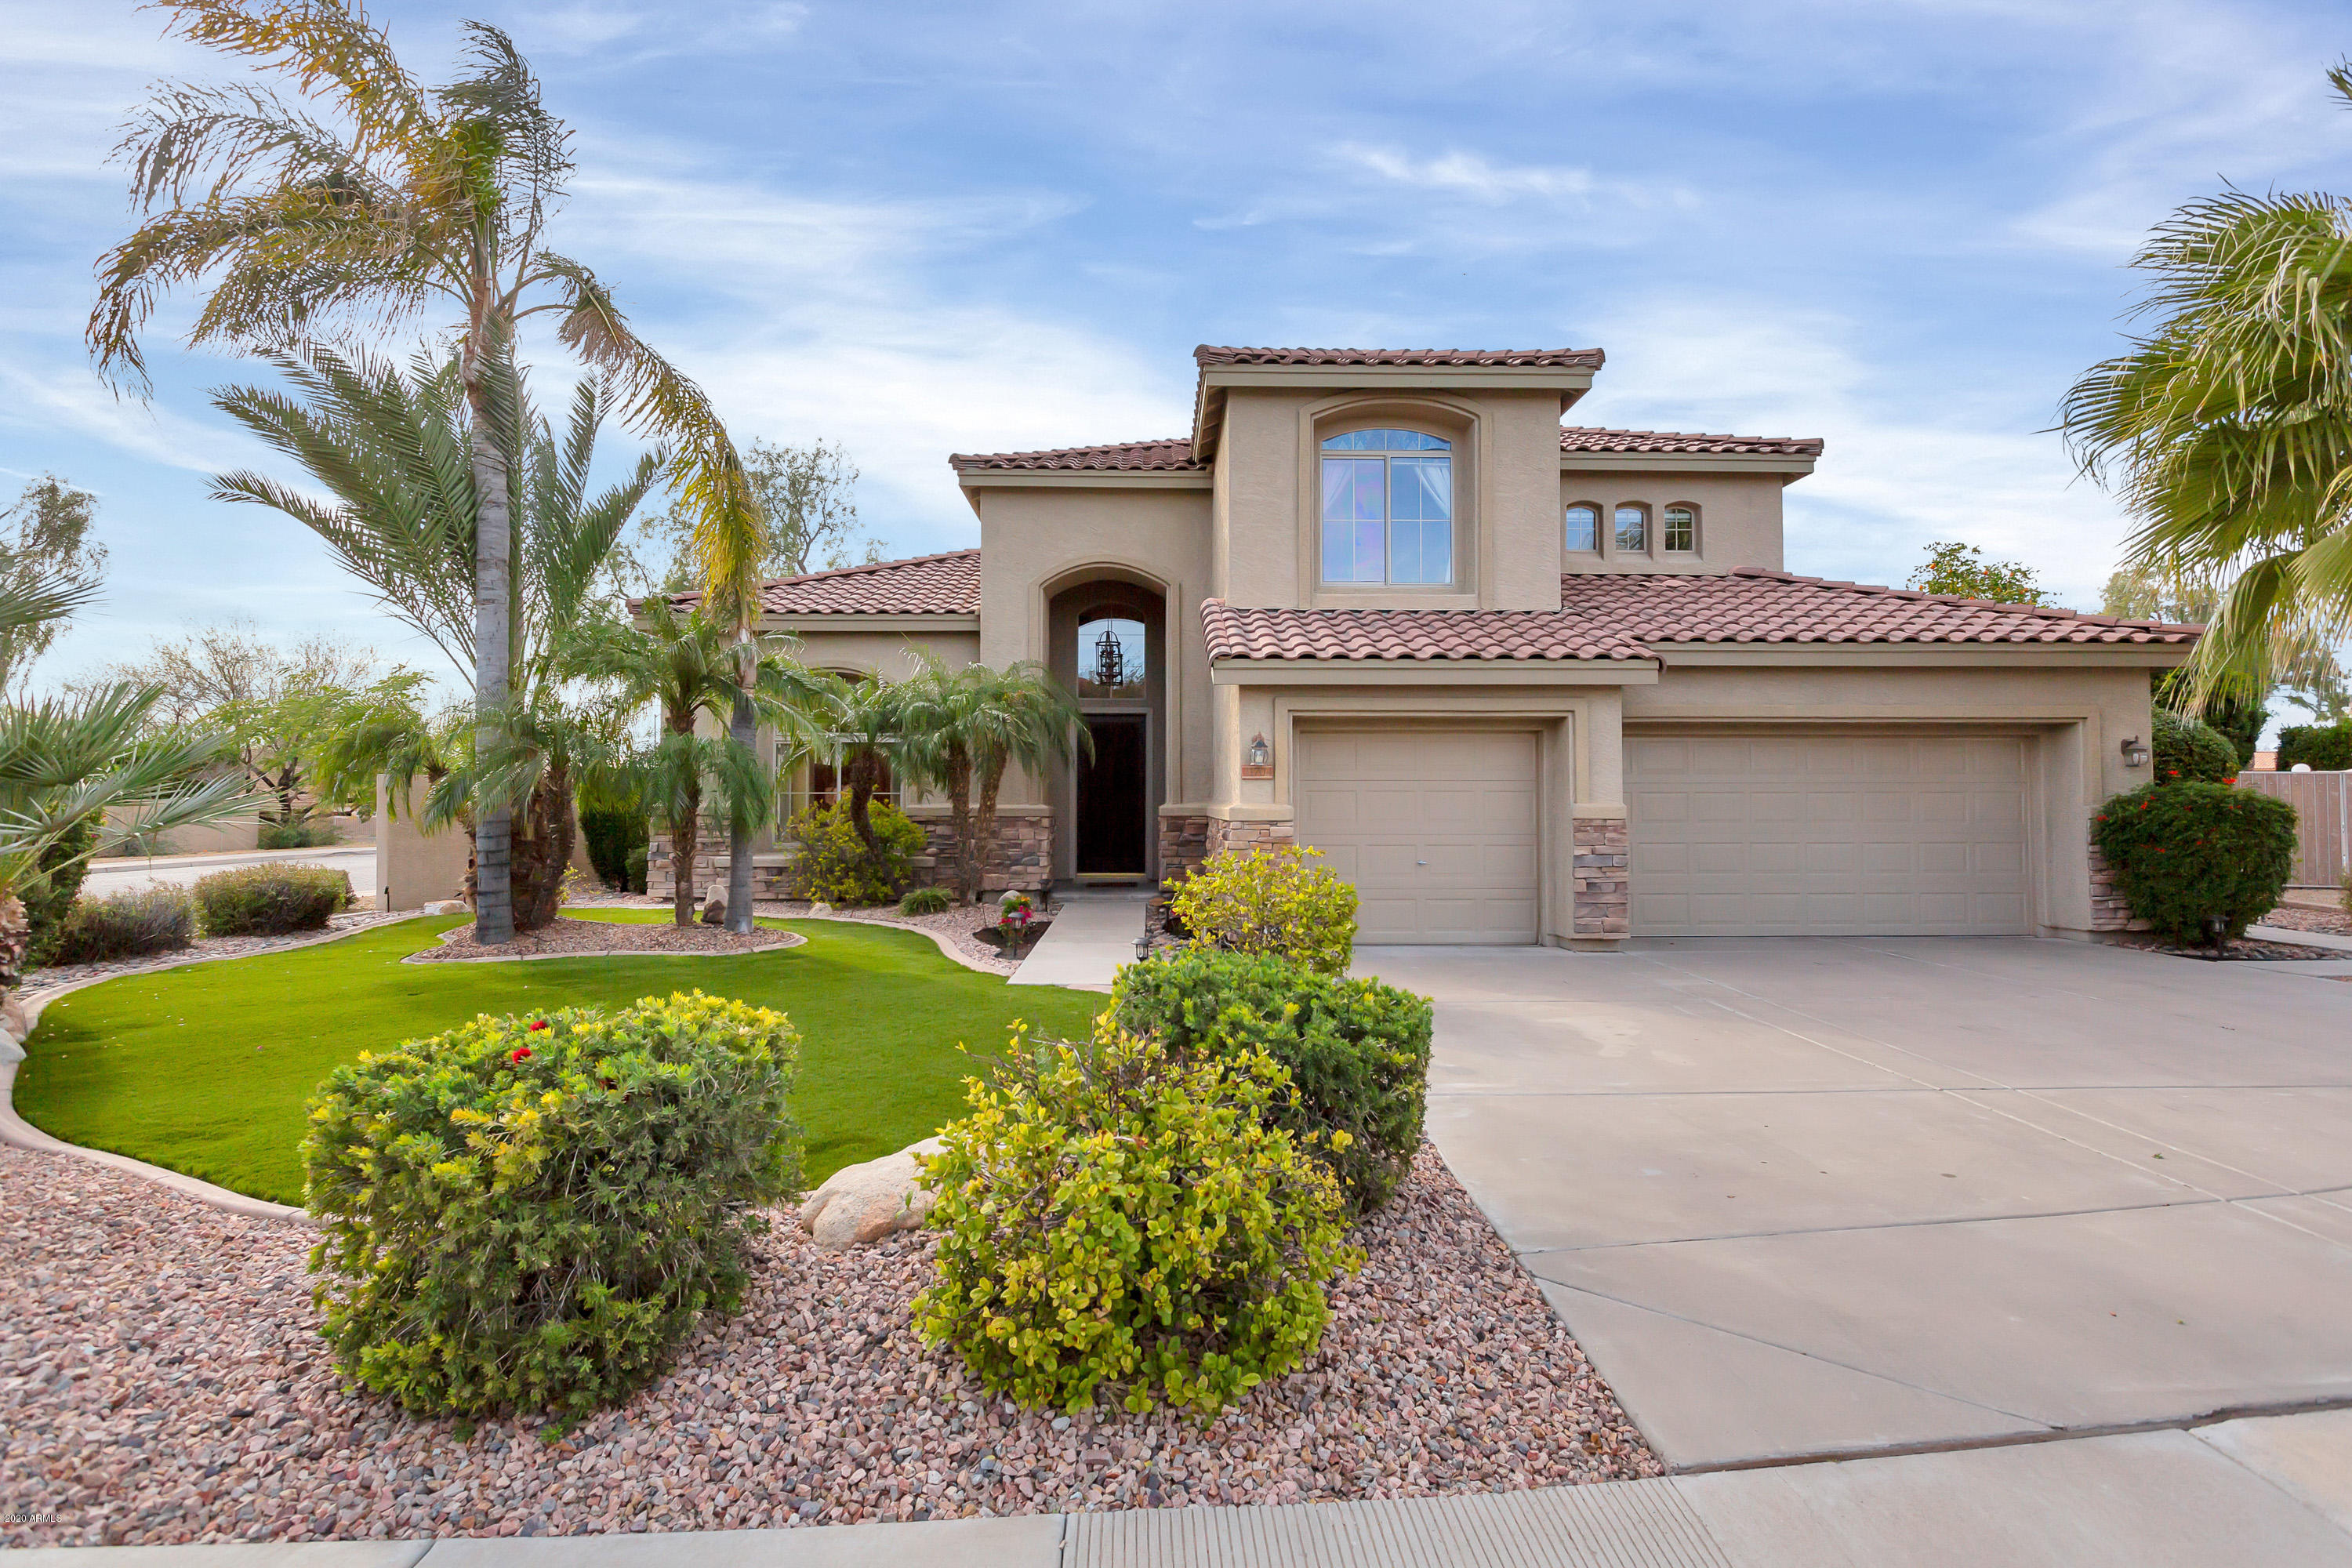 Photo of 21704 N 73RD Avenue, Glendale, AZ 85308